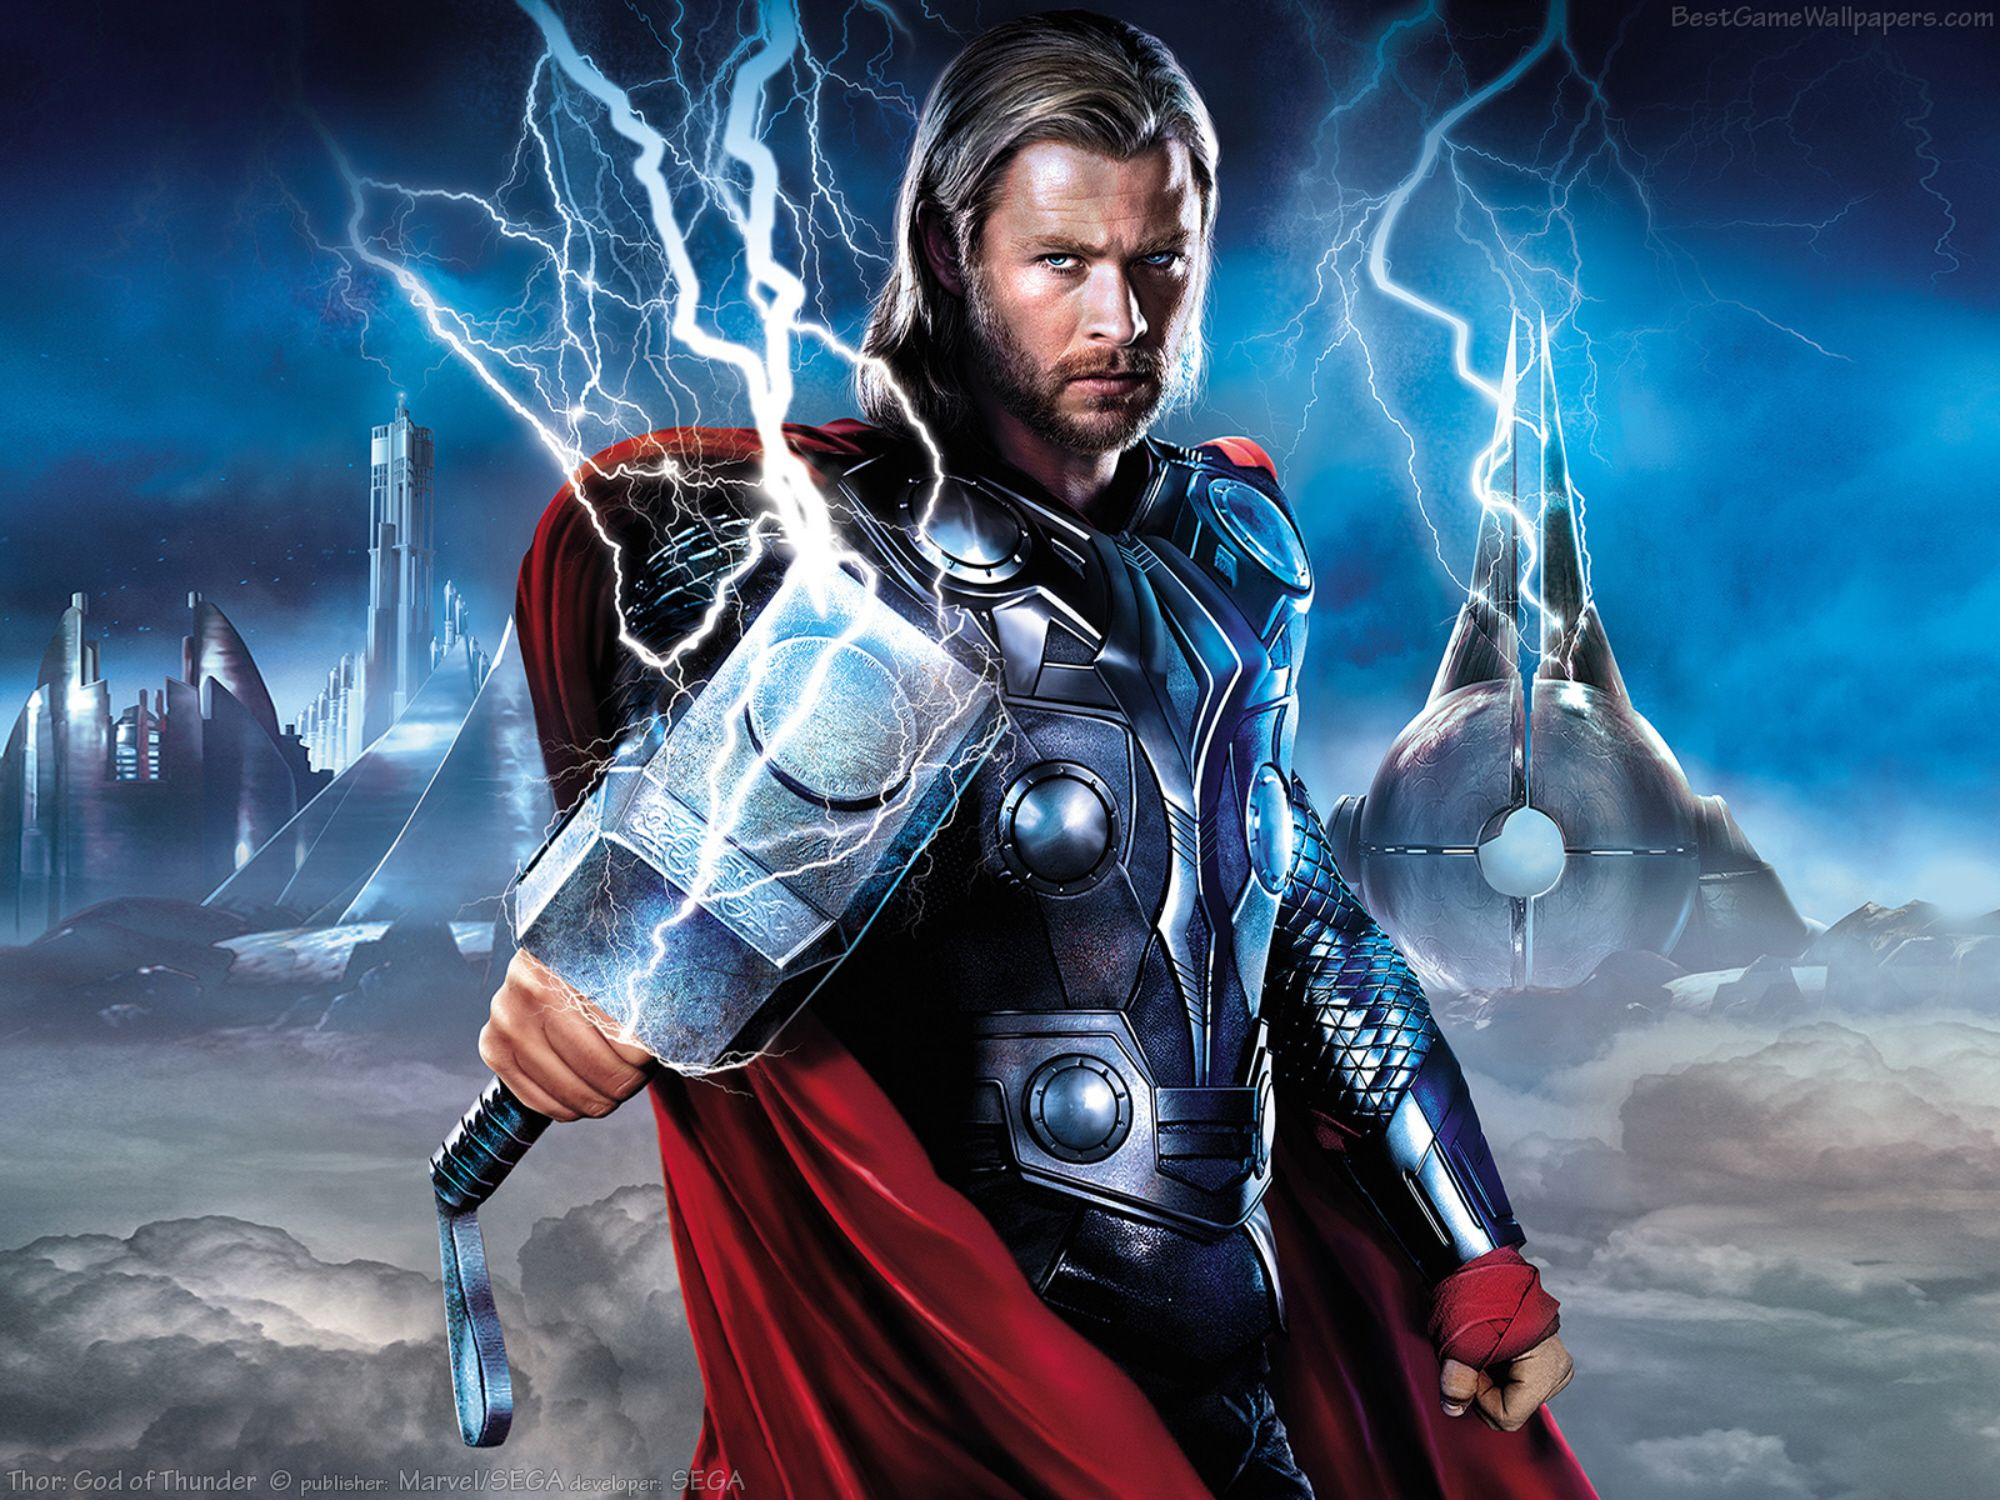 Thor God of Thunder wallpapers – Video Games Blogger